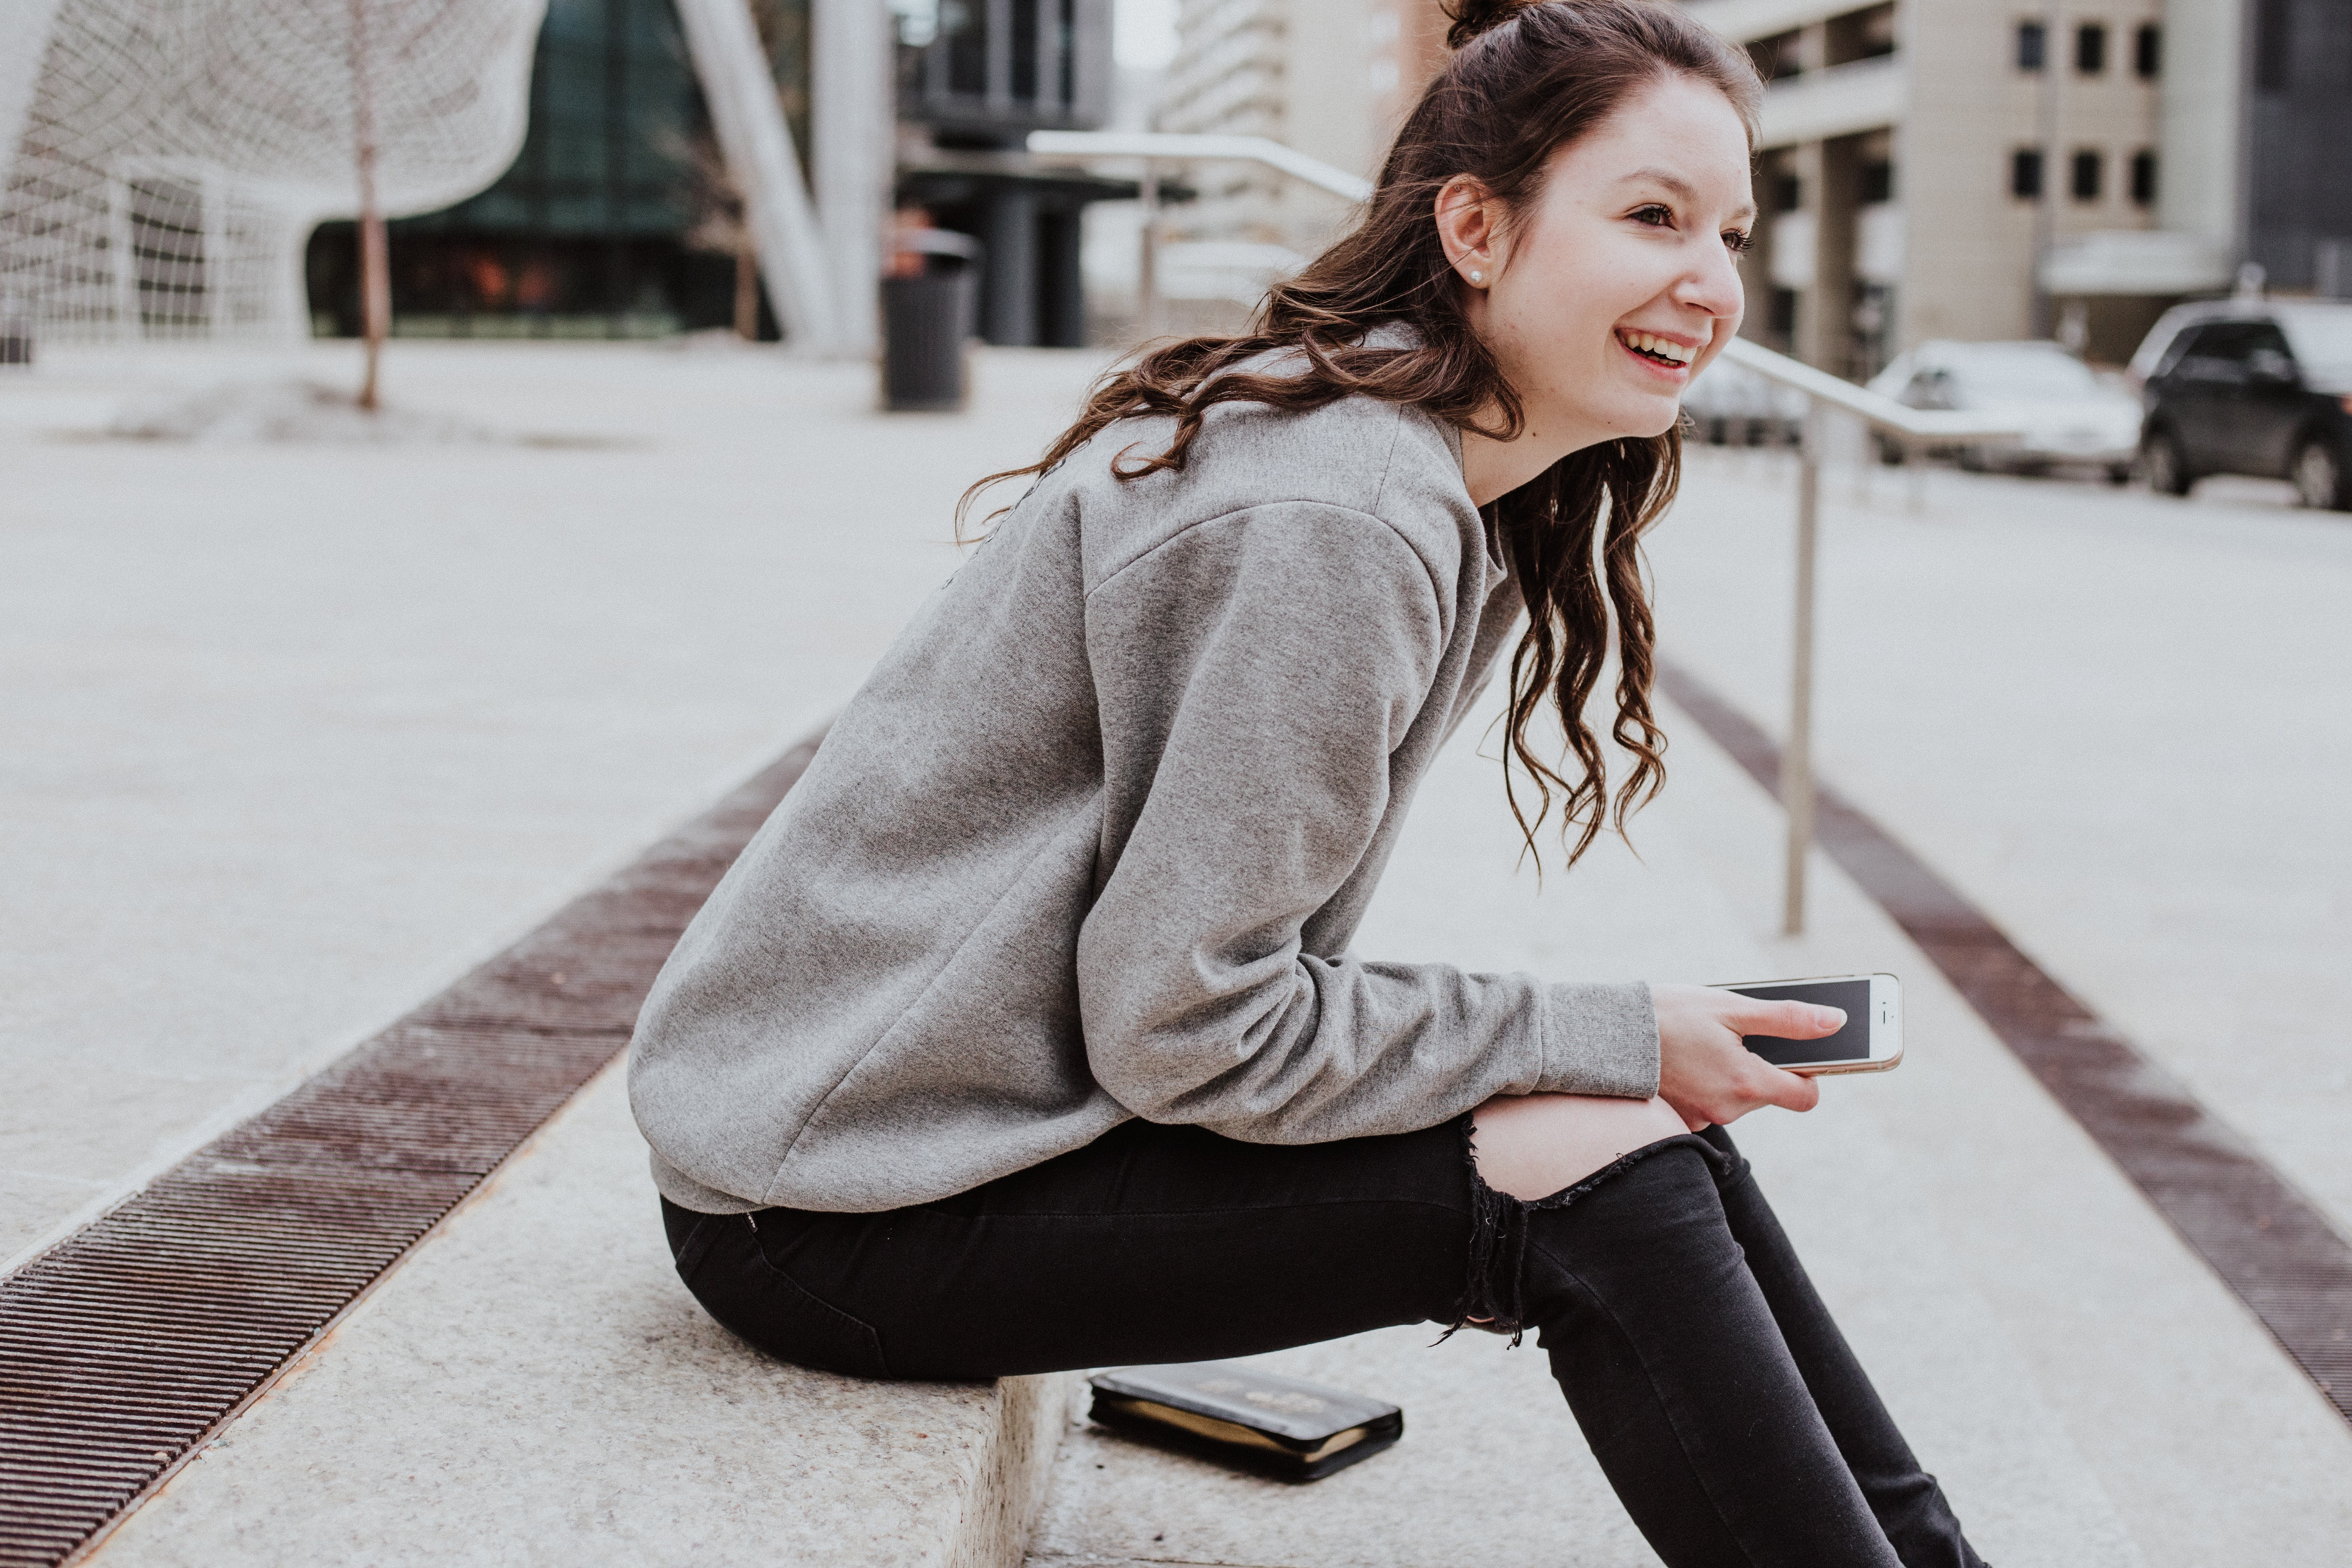 woman sits on sidewalk holding smartphone while smiling